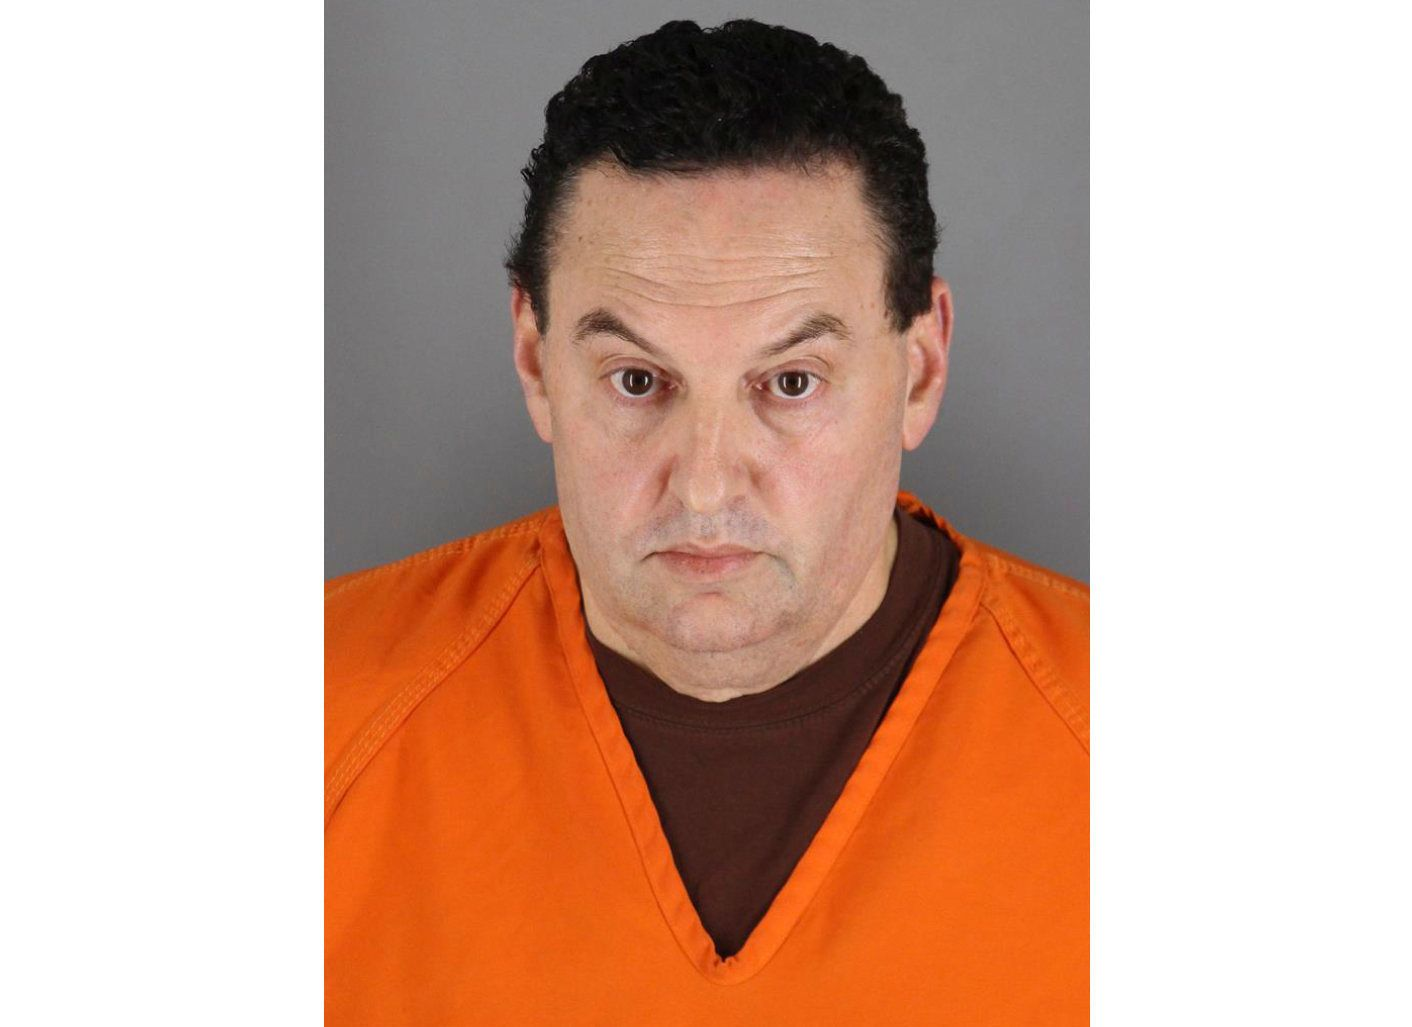 Read: Man Discards Napkin At Hockey Game, Gets Arrested For 1993 Murder